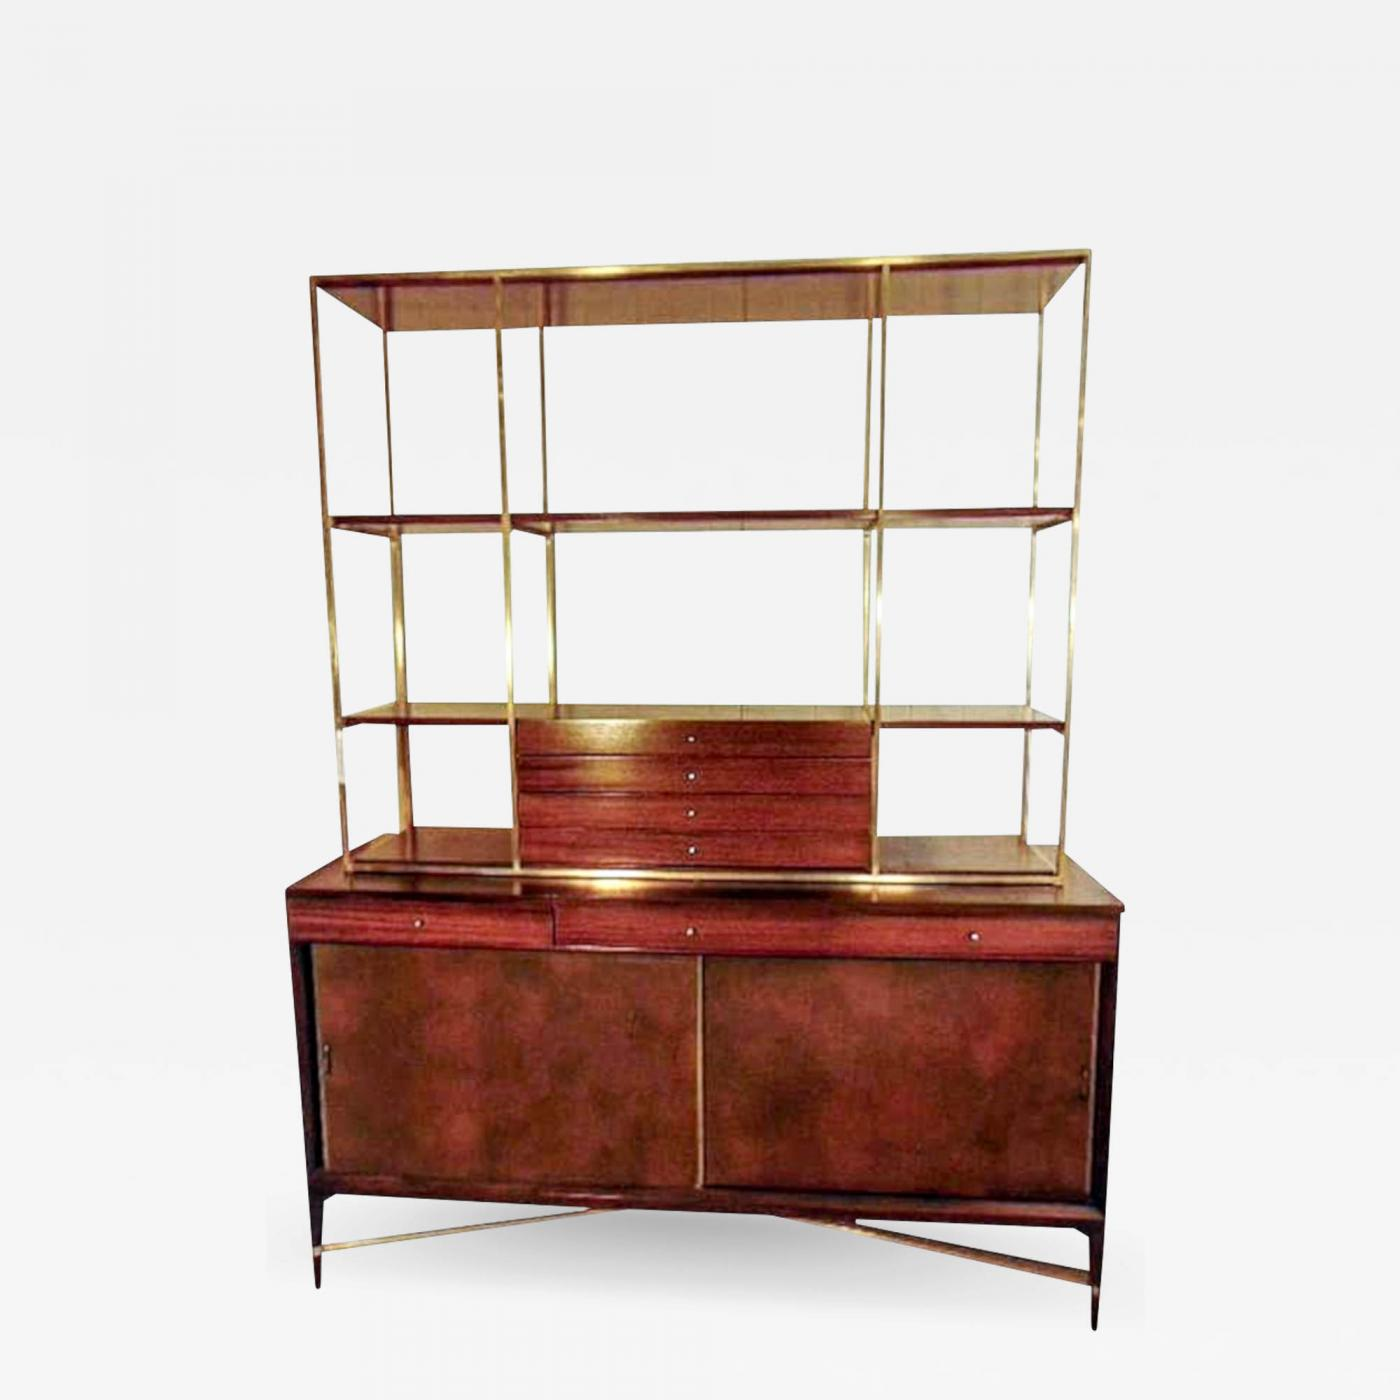 Paul Mccobb Rare Paul Mccobb Brass And Mahogany Bookcase With Leather Covered Doors